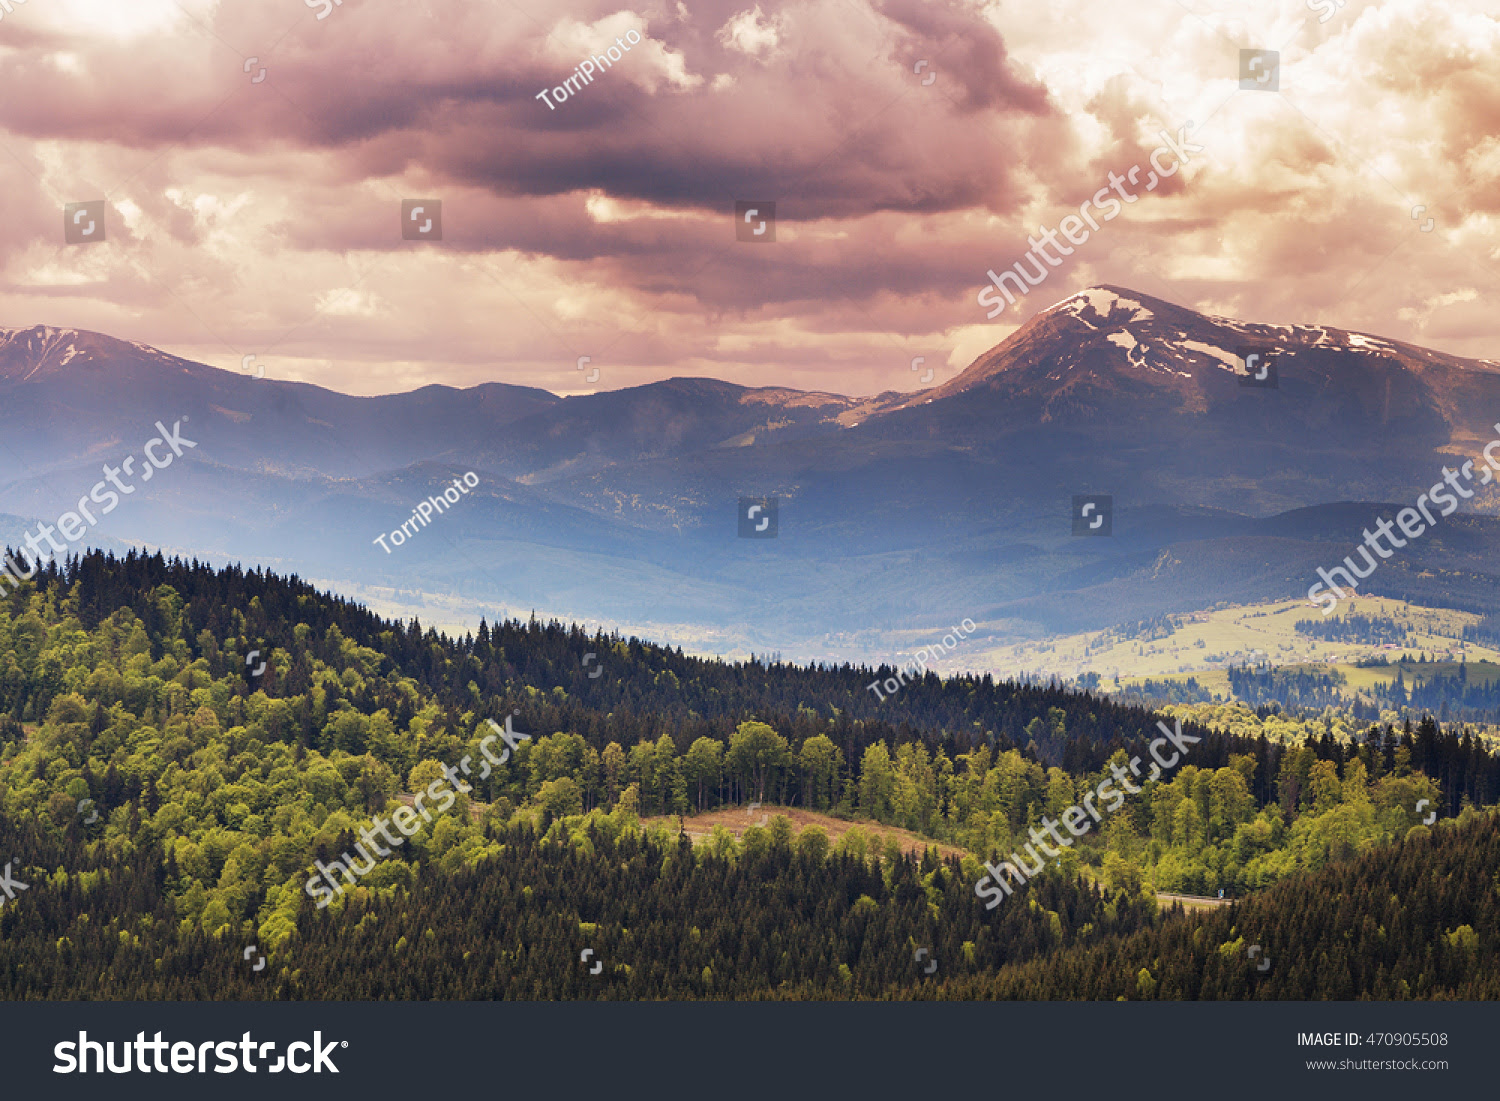 background, beautiful, bizarre, carpathians, climate, cloud, cloudscape, cloudy, color, colorful, country, countryside, dark, dramatic, evening, far, fir, fire, forest, highland, hill, horizon, journey, land, landscape, majestic, mountains, mystery, natural, nature, orange, outdoor, peak, power, red, rocks, rural, scene, silhouette, sky, summer, sunlight, tranquil, travel, tree, view, weather, west, wildlife